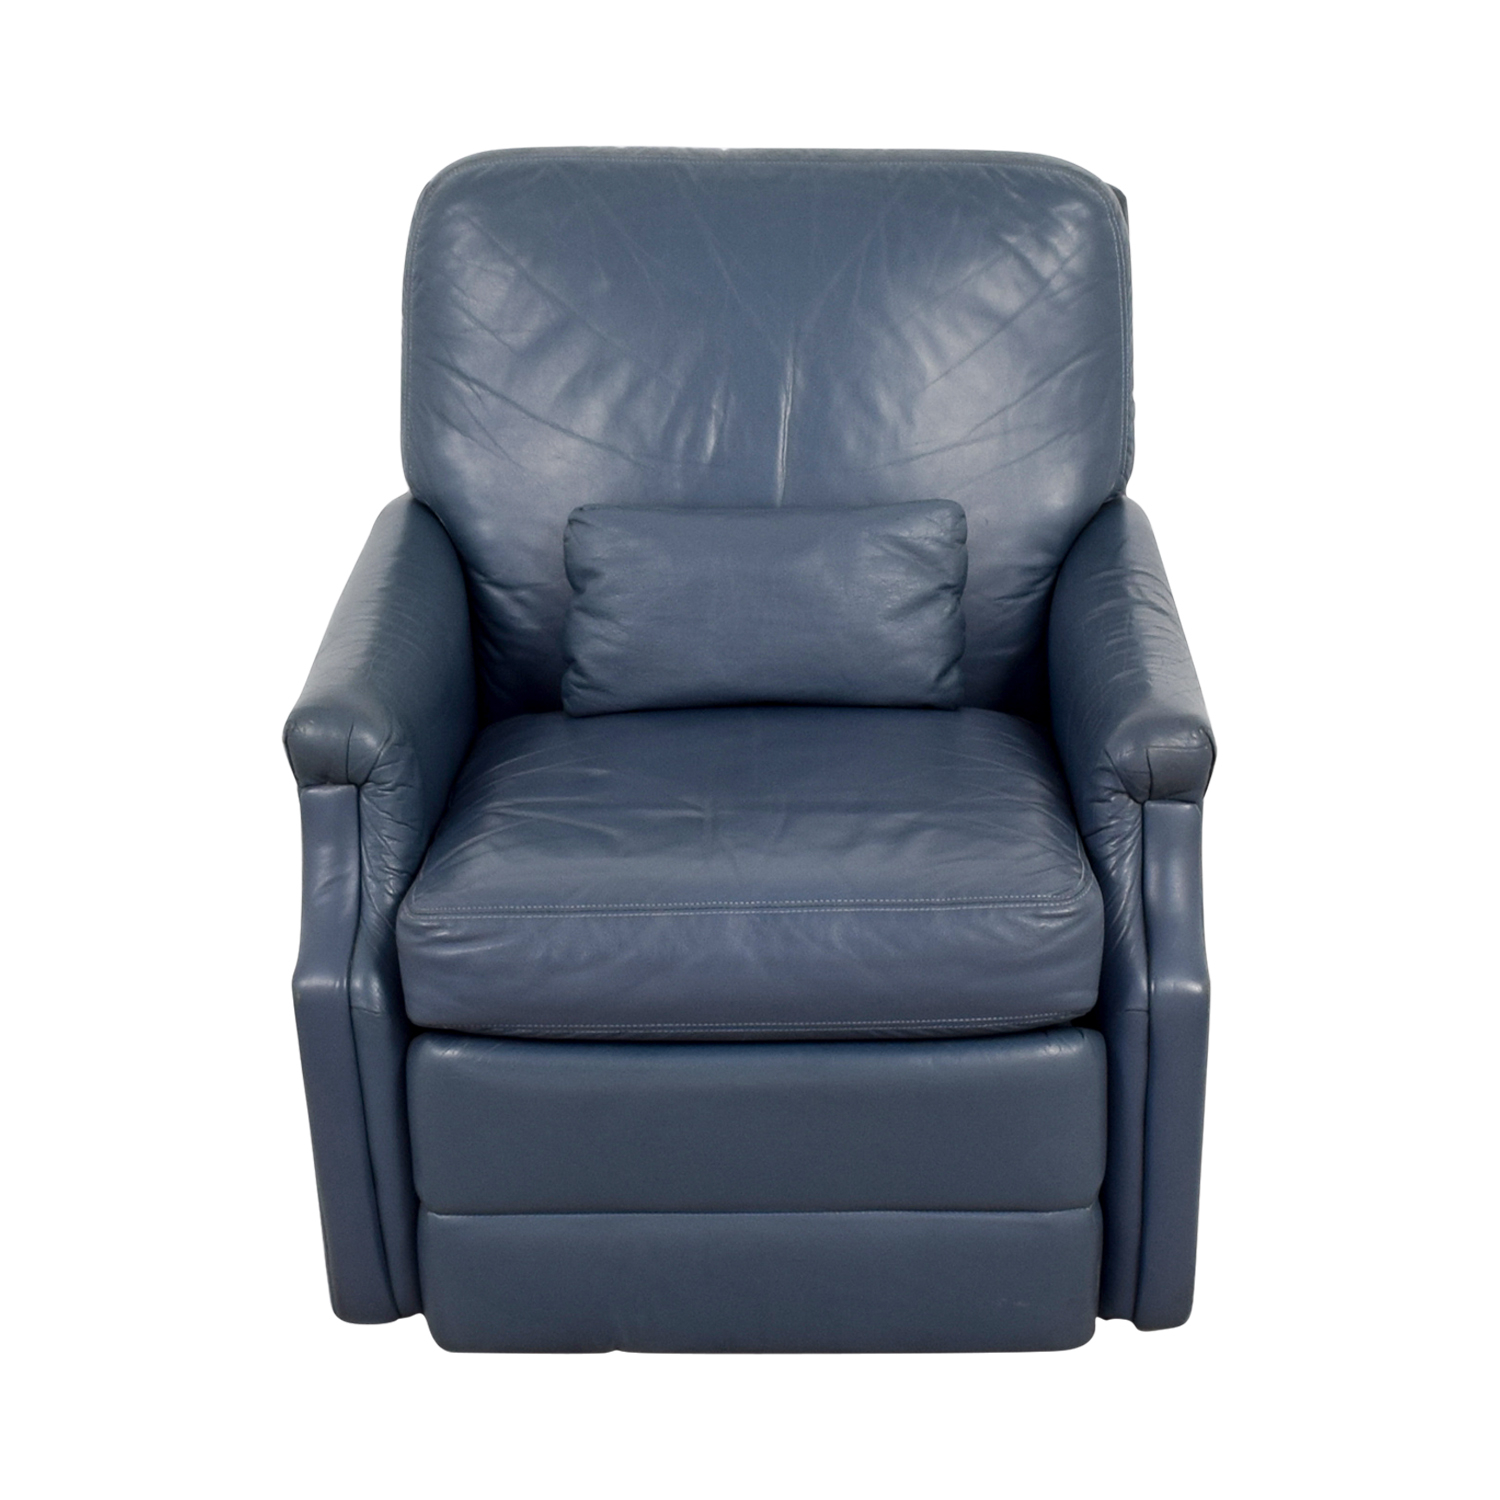 Recliners: Used Recliners for sale